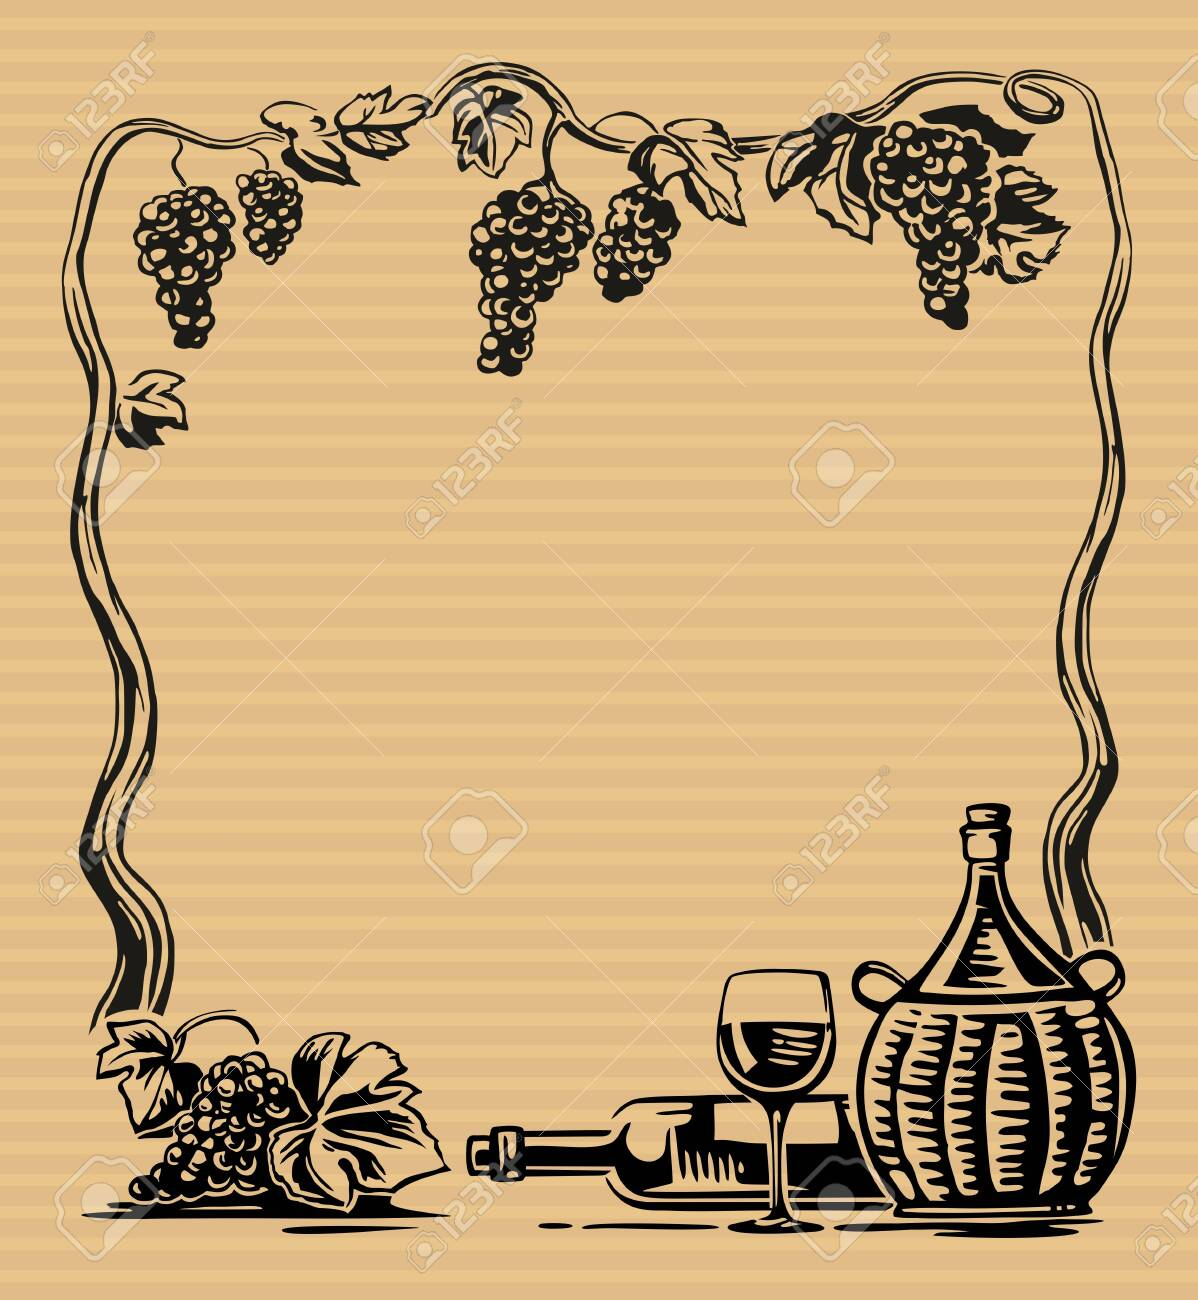 Rural landscape with villa and vineyard fields. Bunch of grapes, a bottle, a glass and a jug of wine. Vintage engraving - 131787404